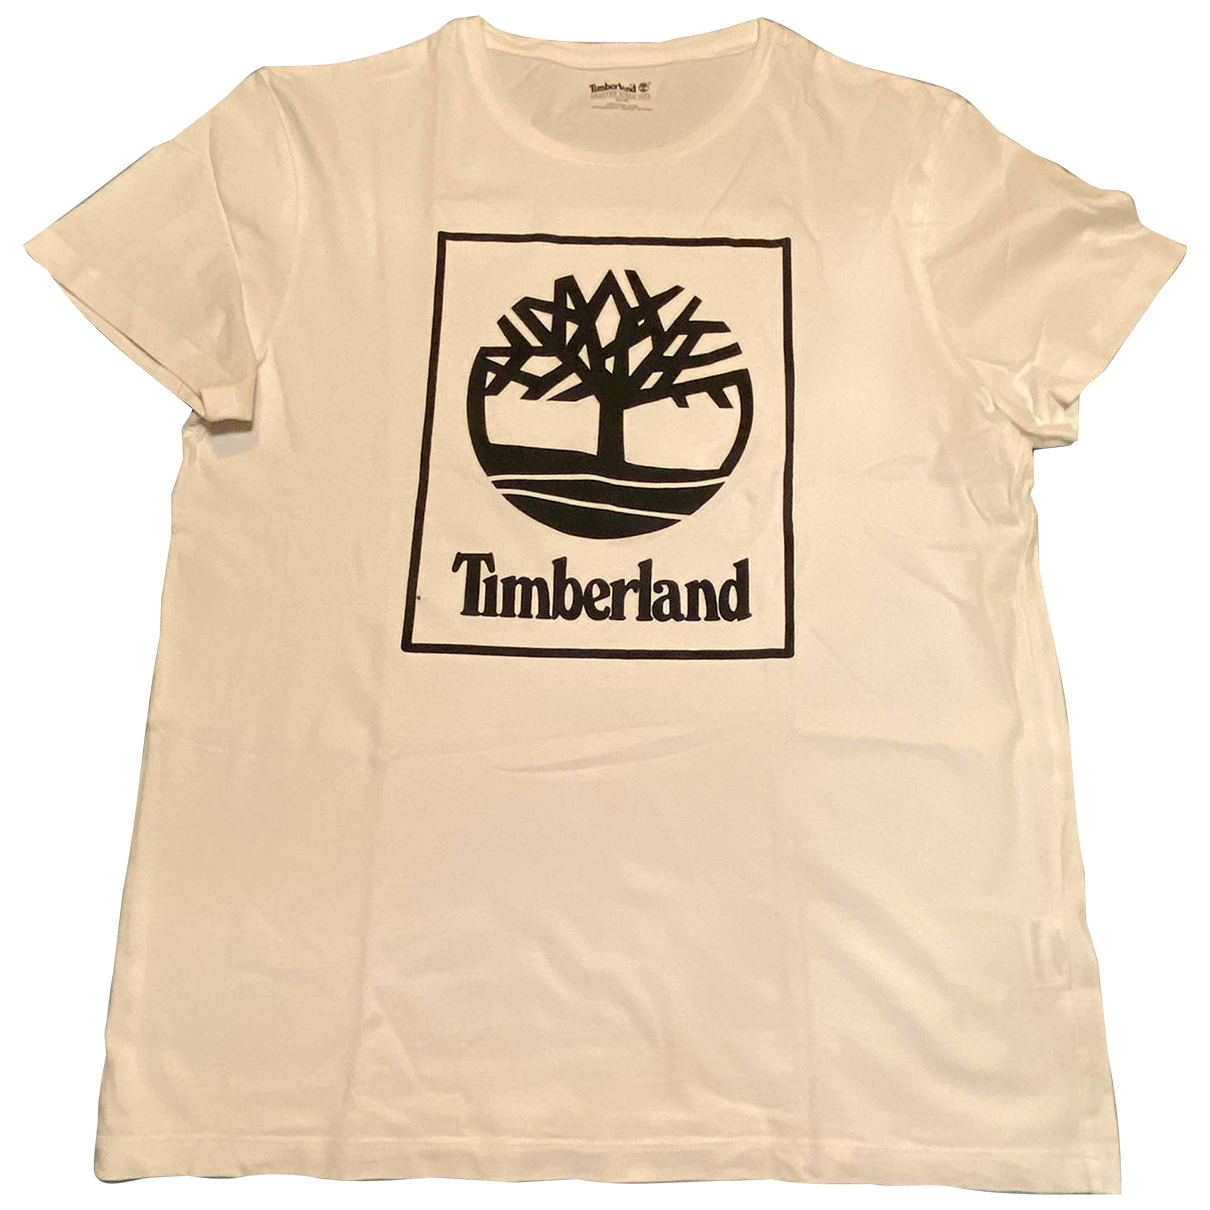 Timberland - Tee shirts   pour homme en coton - blanc